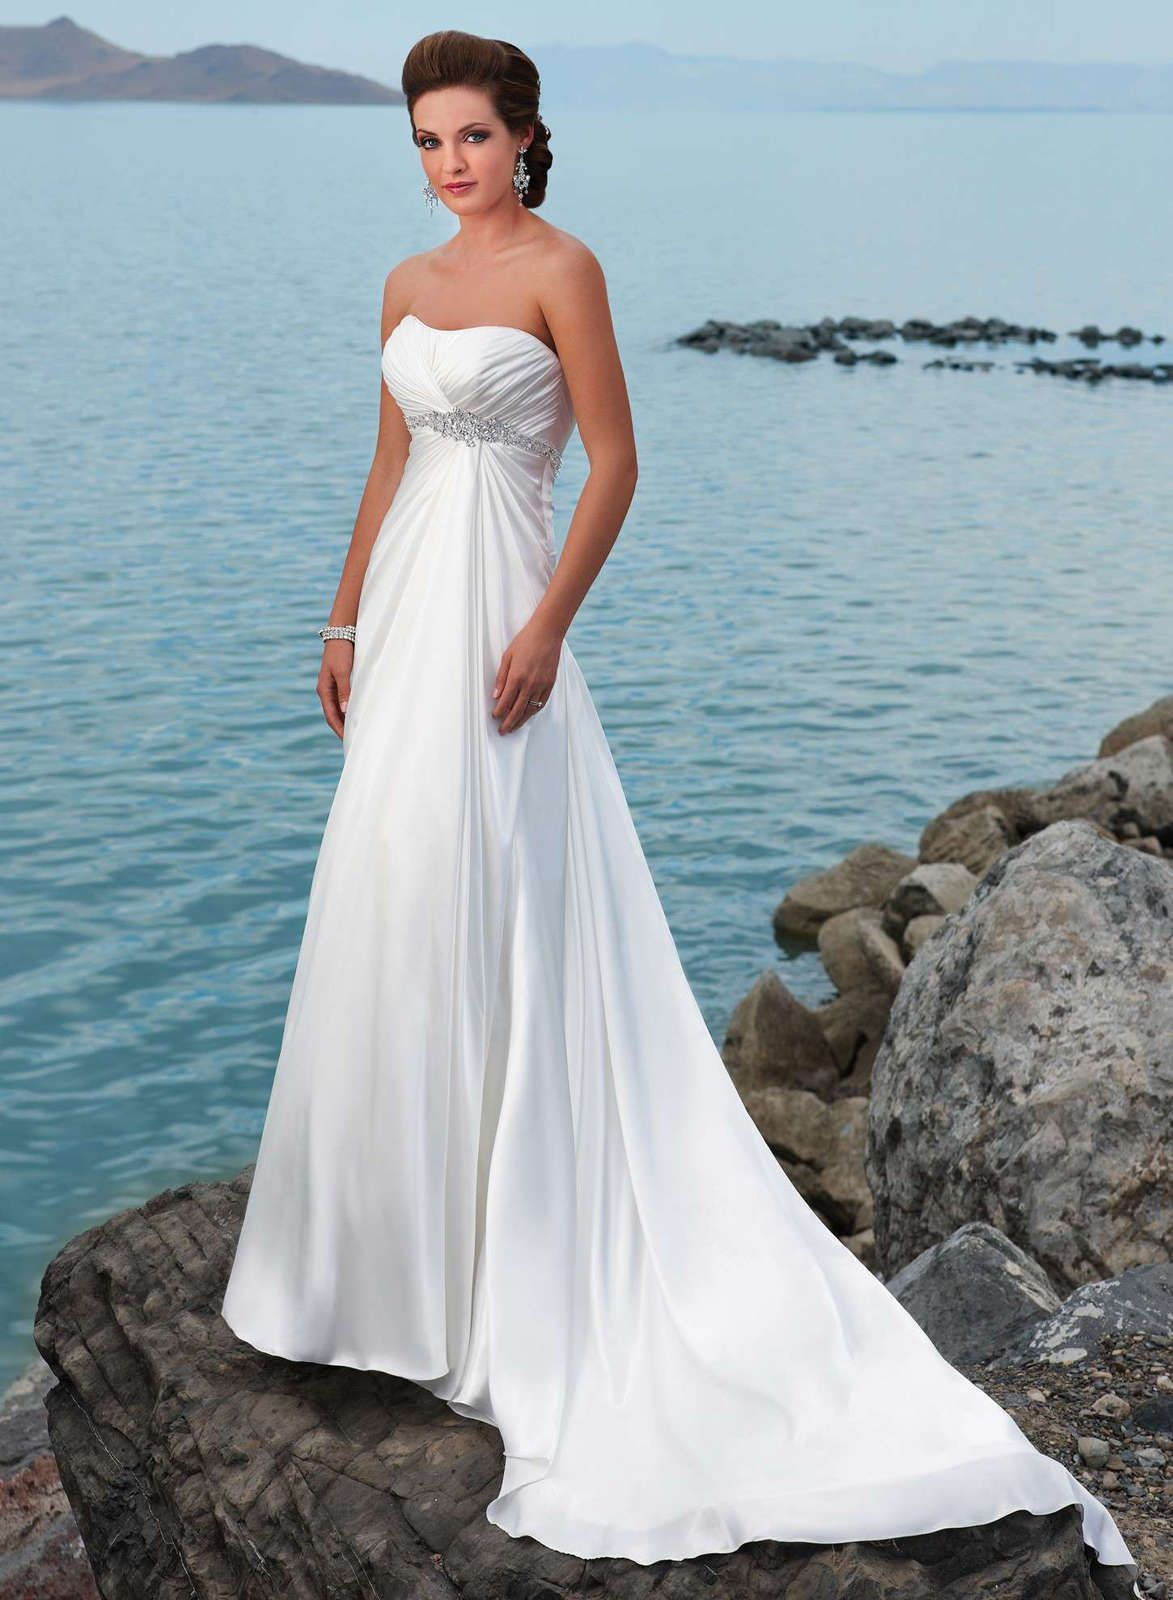 Beach Wedding Dresses Gowns | dress ideas | Pinterest | Beach ...